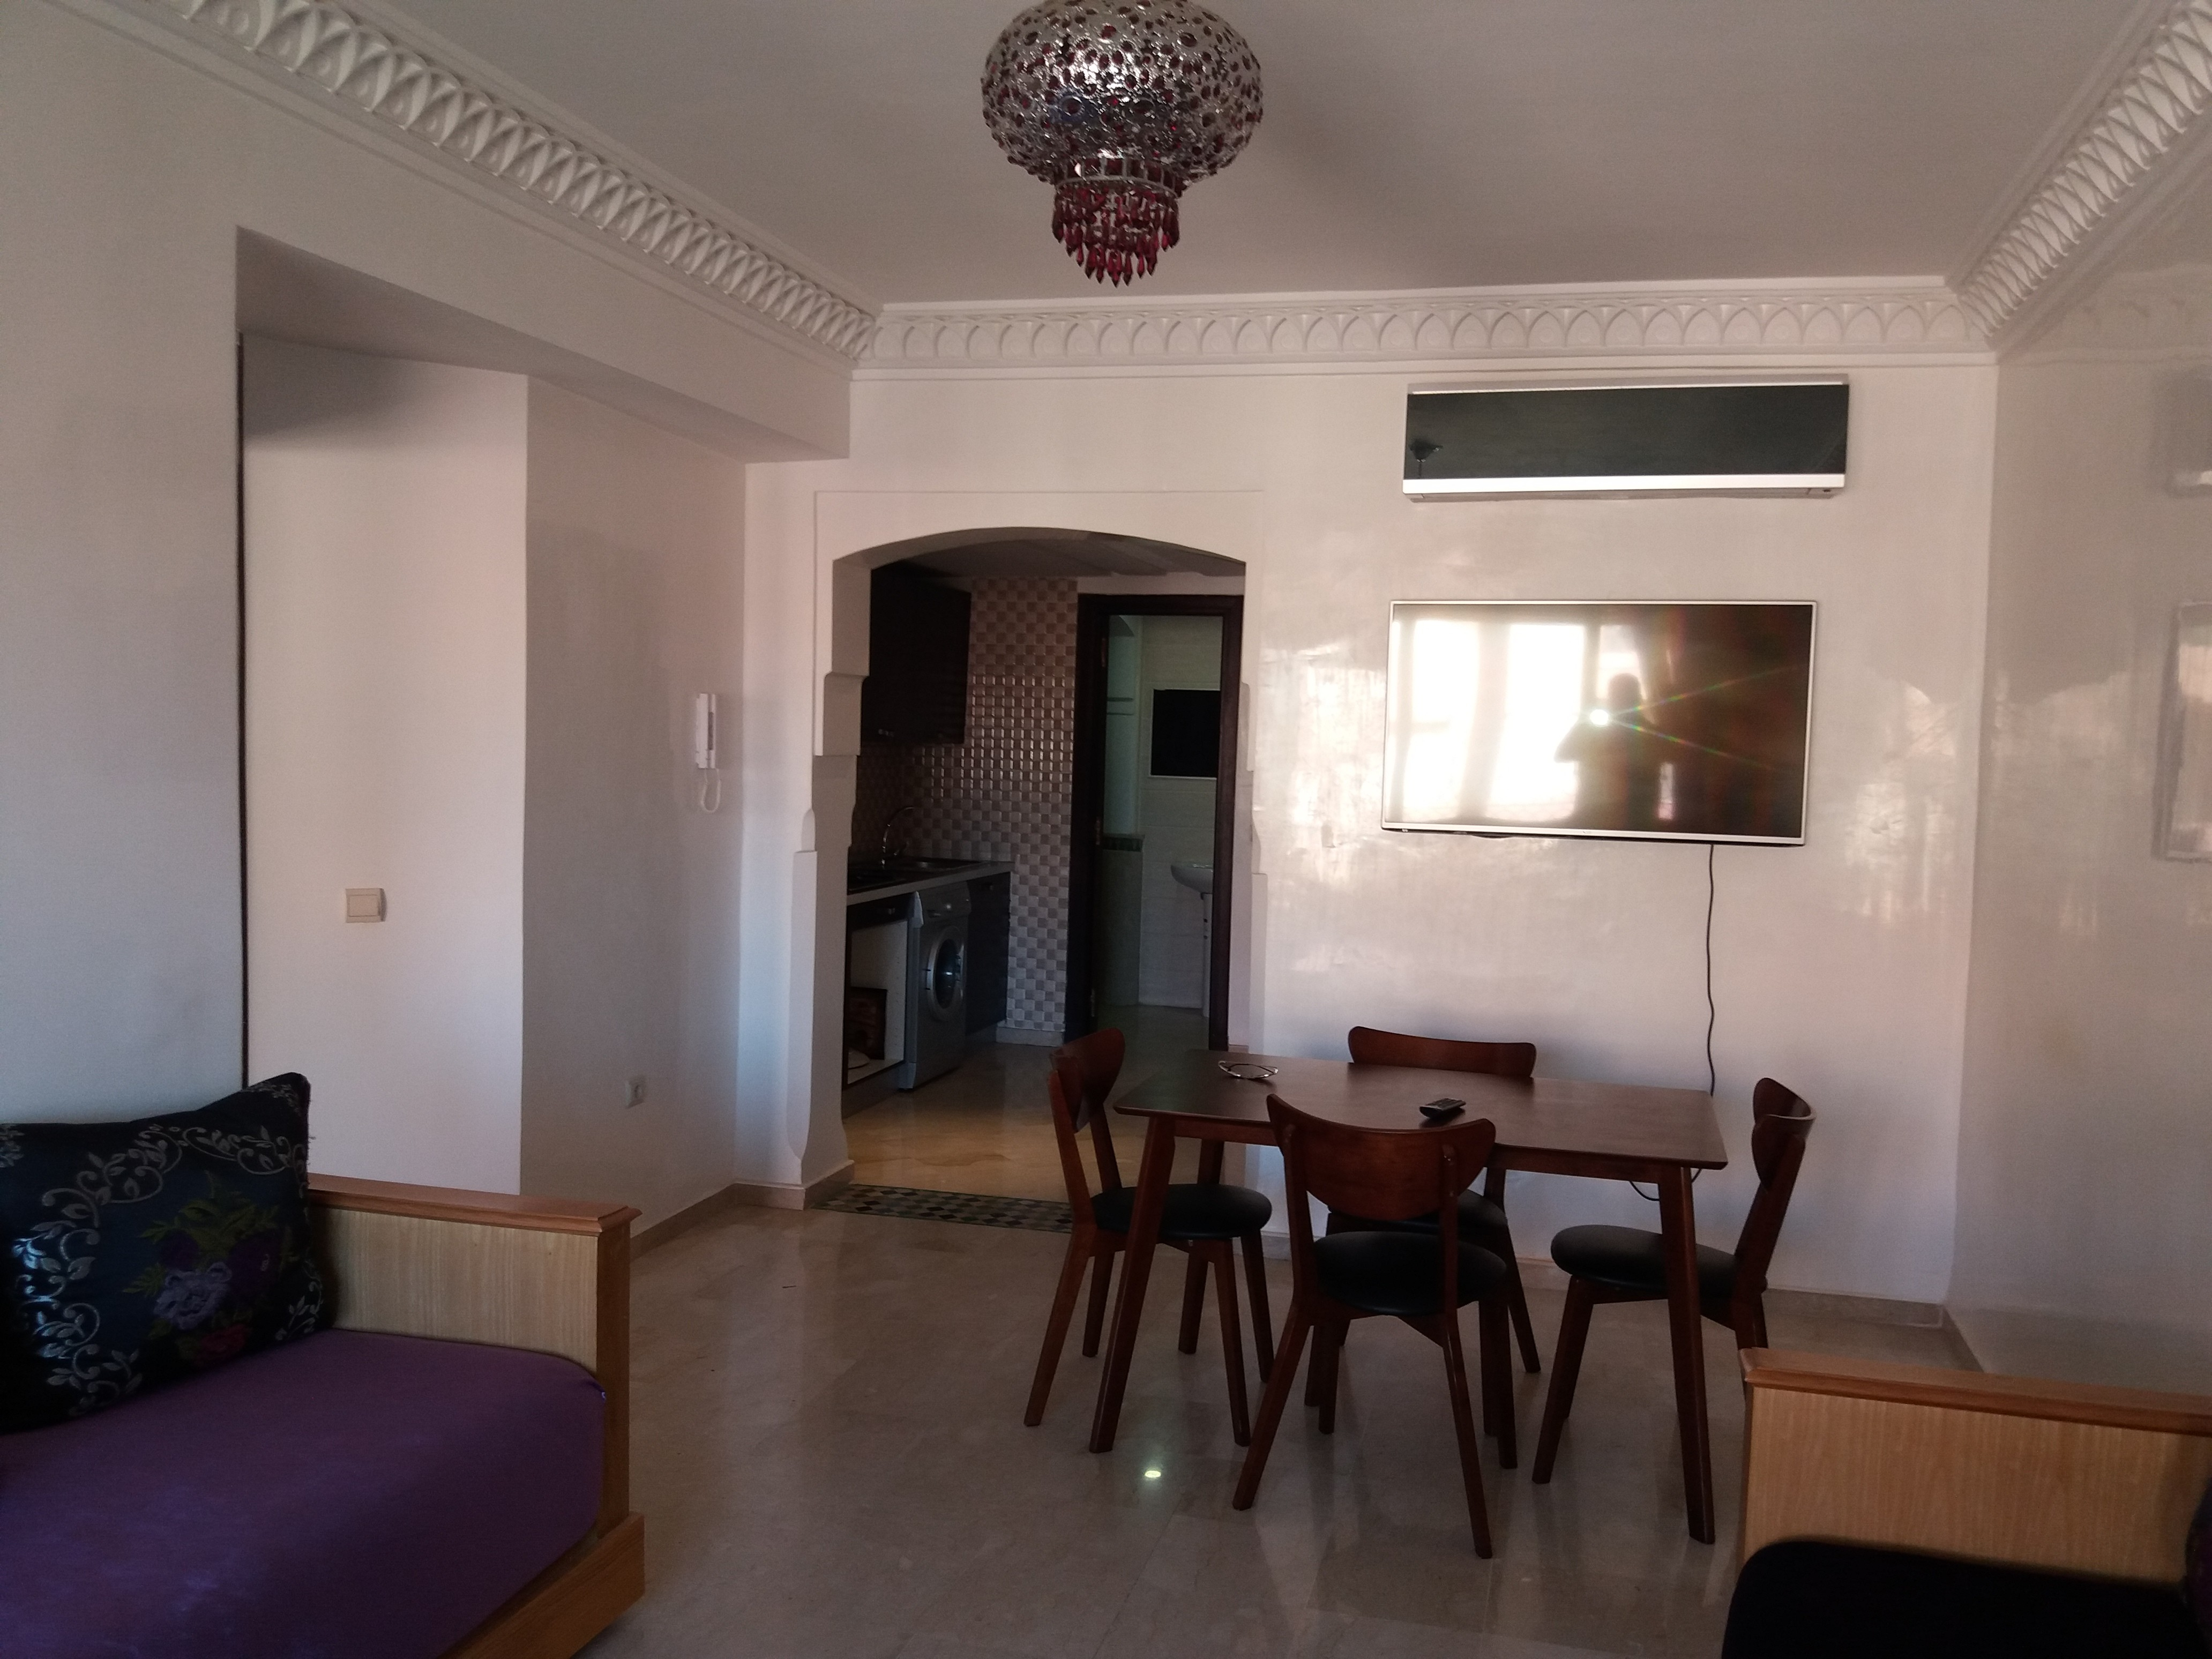 Location <strong>Appartement</strong> Marrakech Hivernage <strong>75 m2</strong>